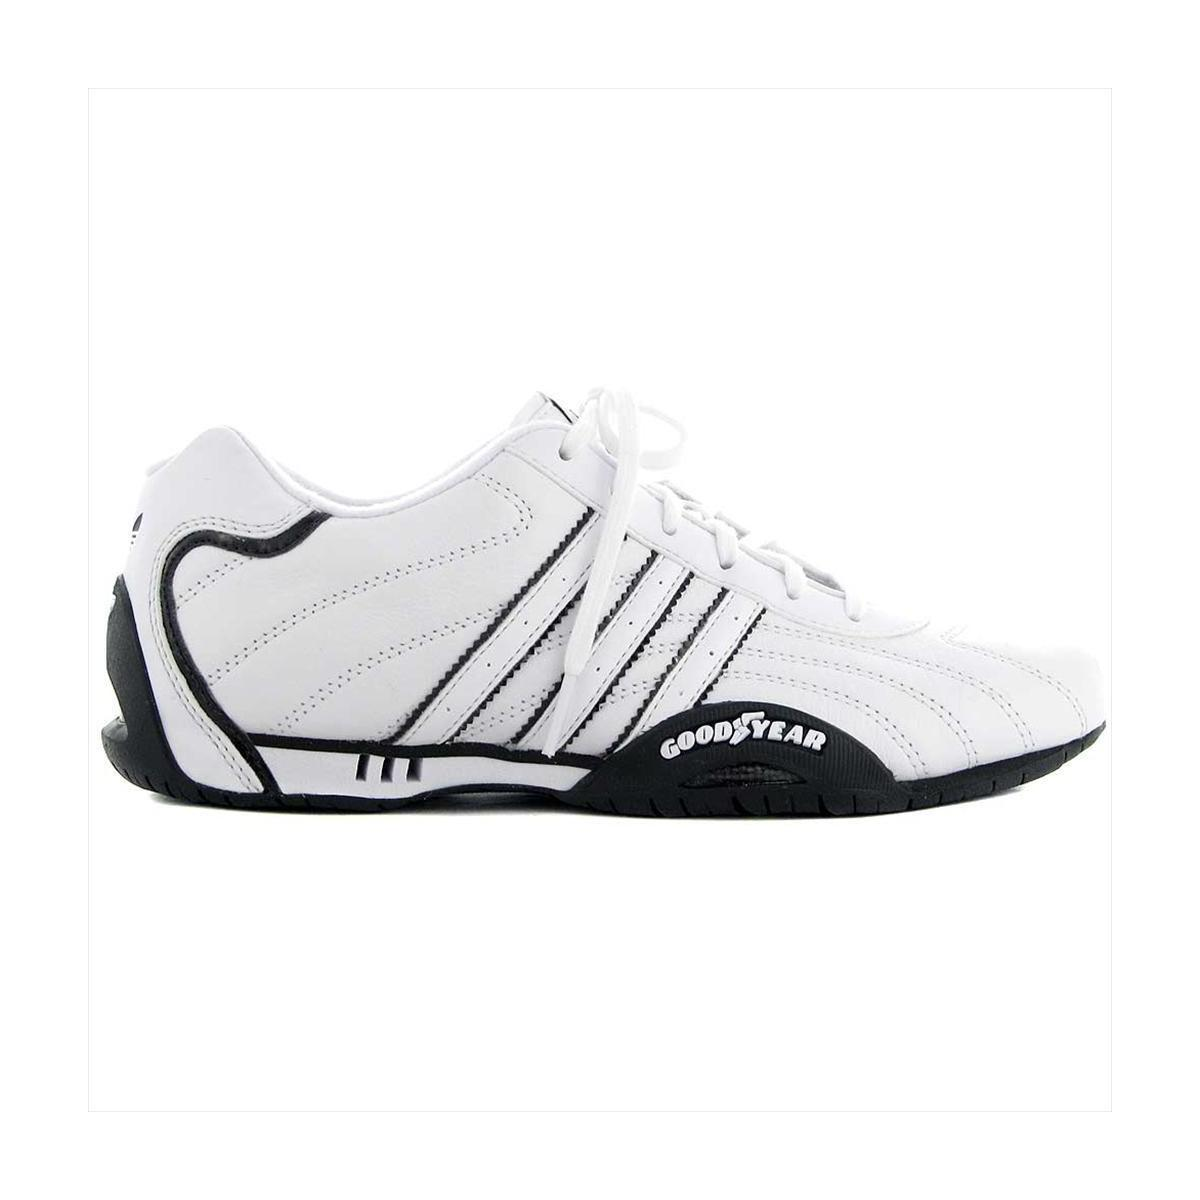 adidas goodyear trainers white cheap online